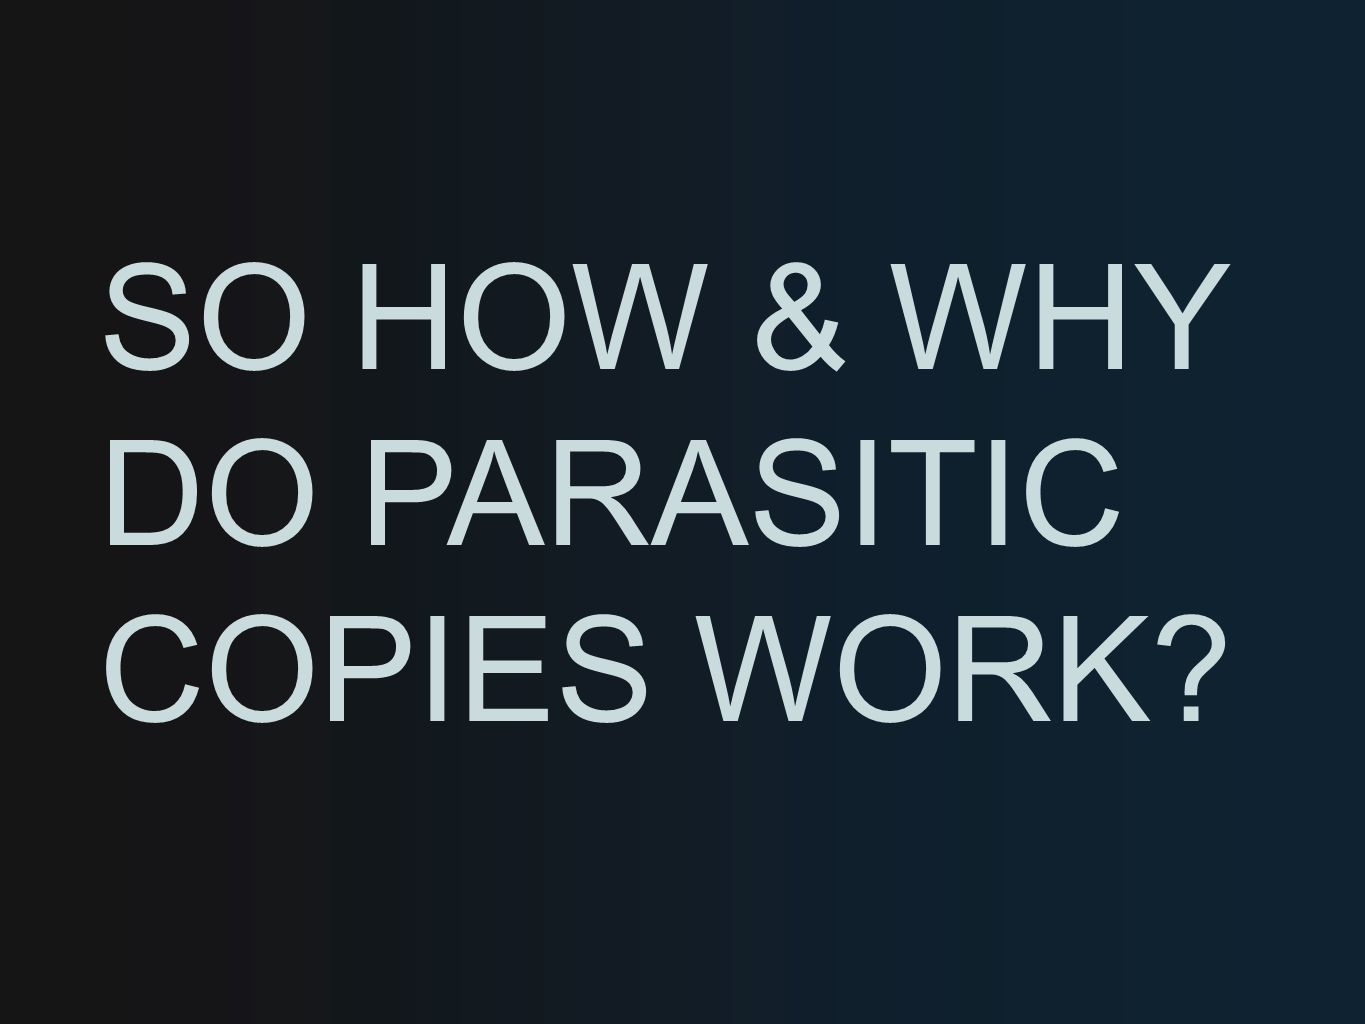 SO HOW & WHY DO PARASITIC COPIES WORK